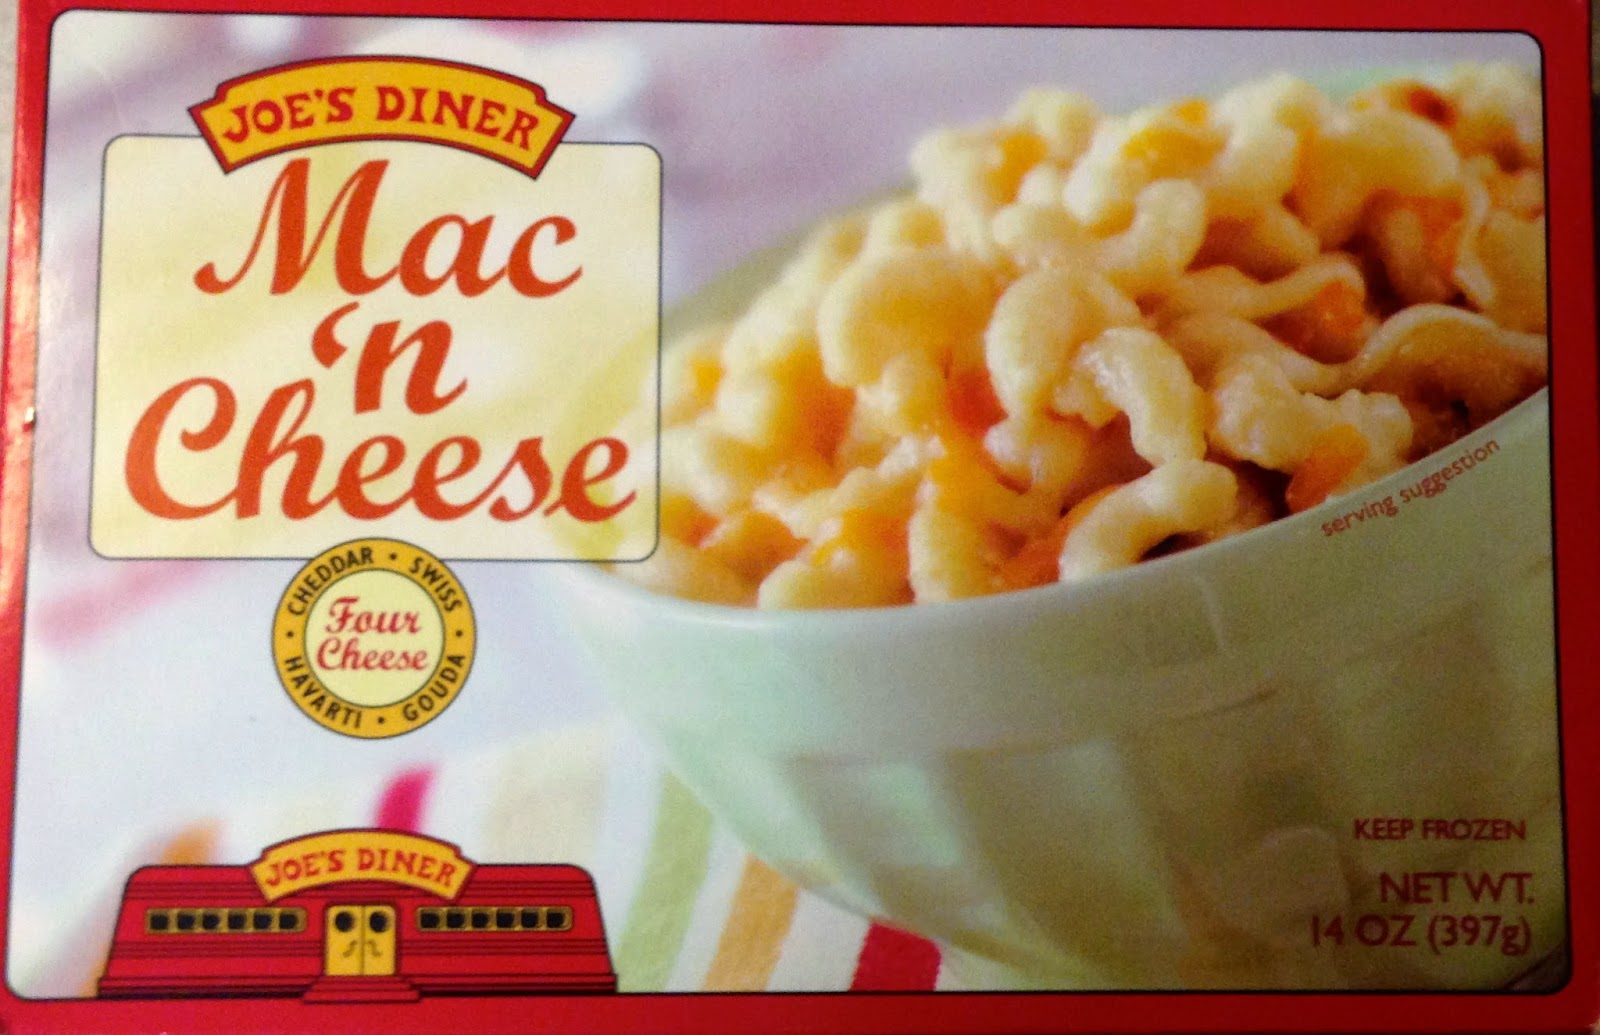 Everything Tjs Joes Diner Mac N Cheese